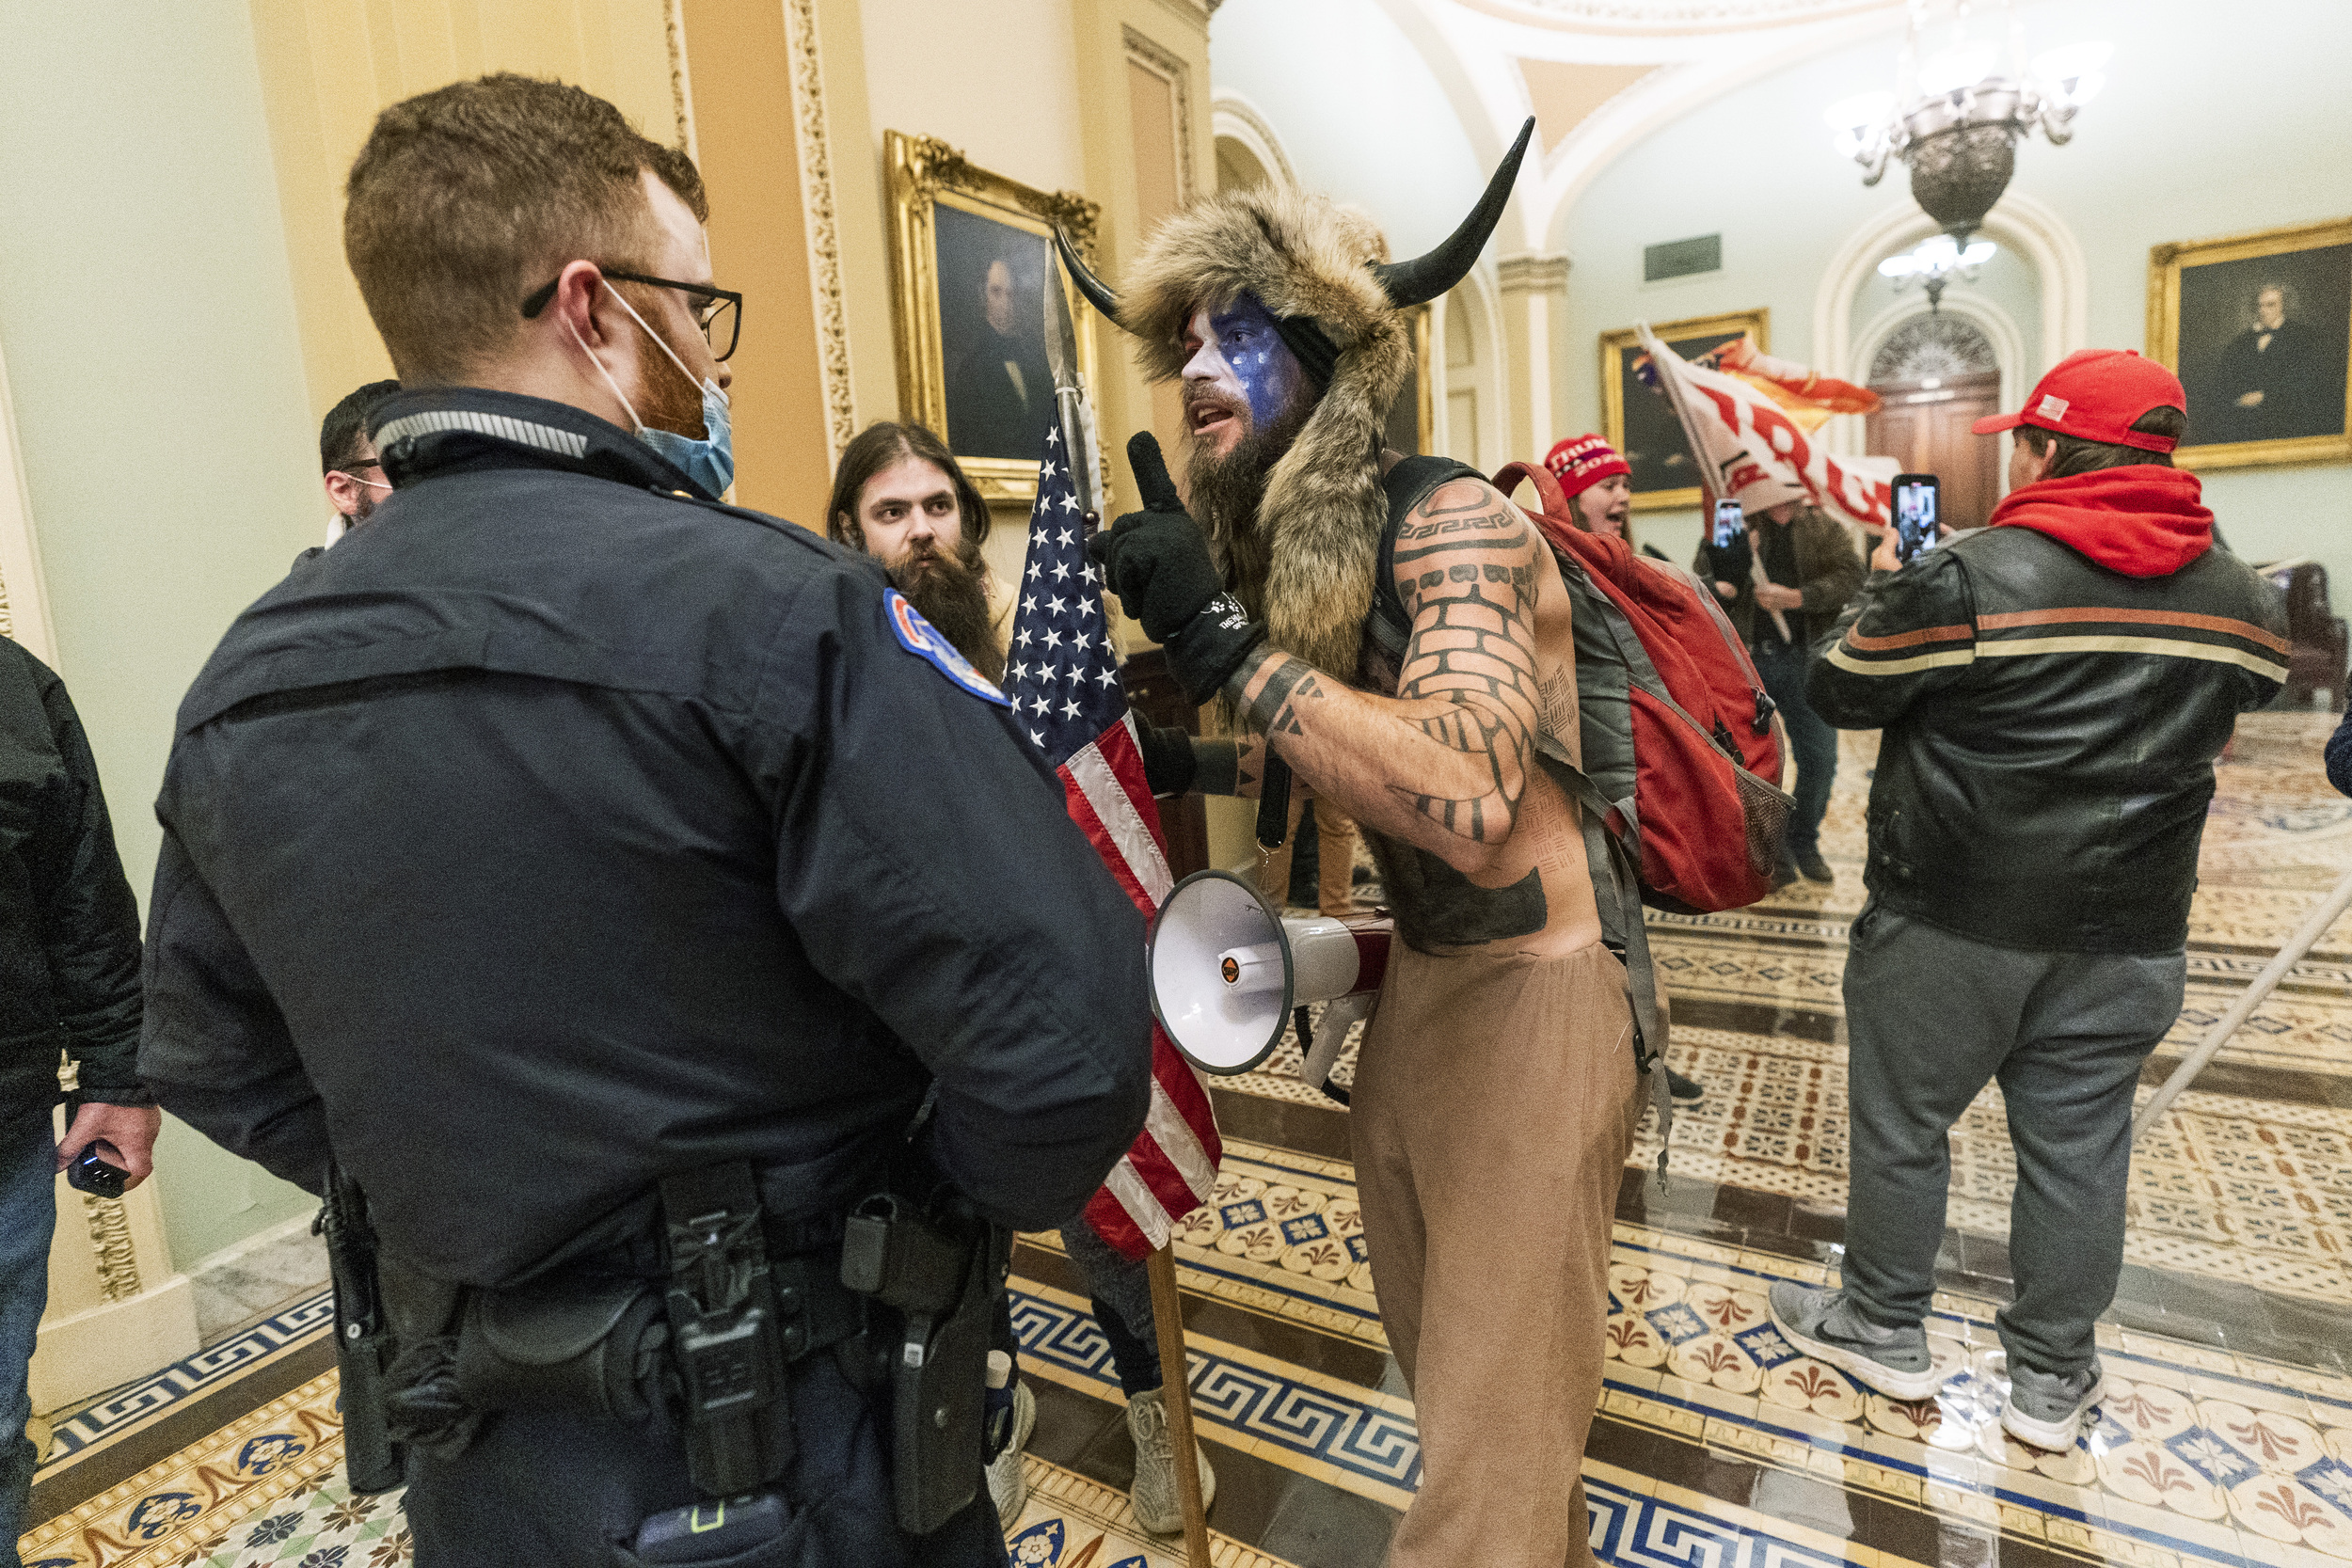 Records show fervent Trump fans fueled Capitol takeover